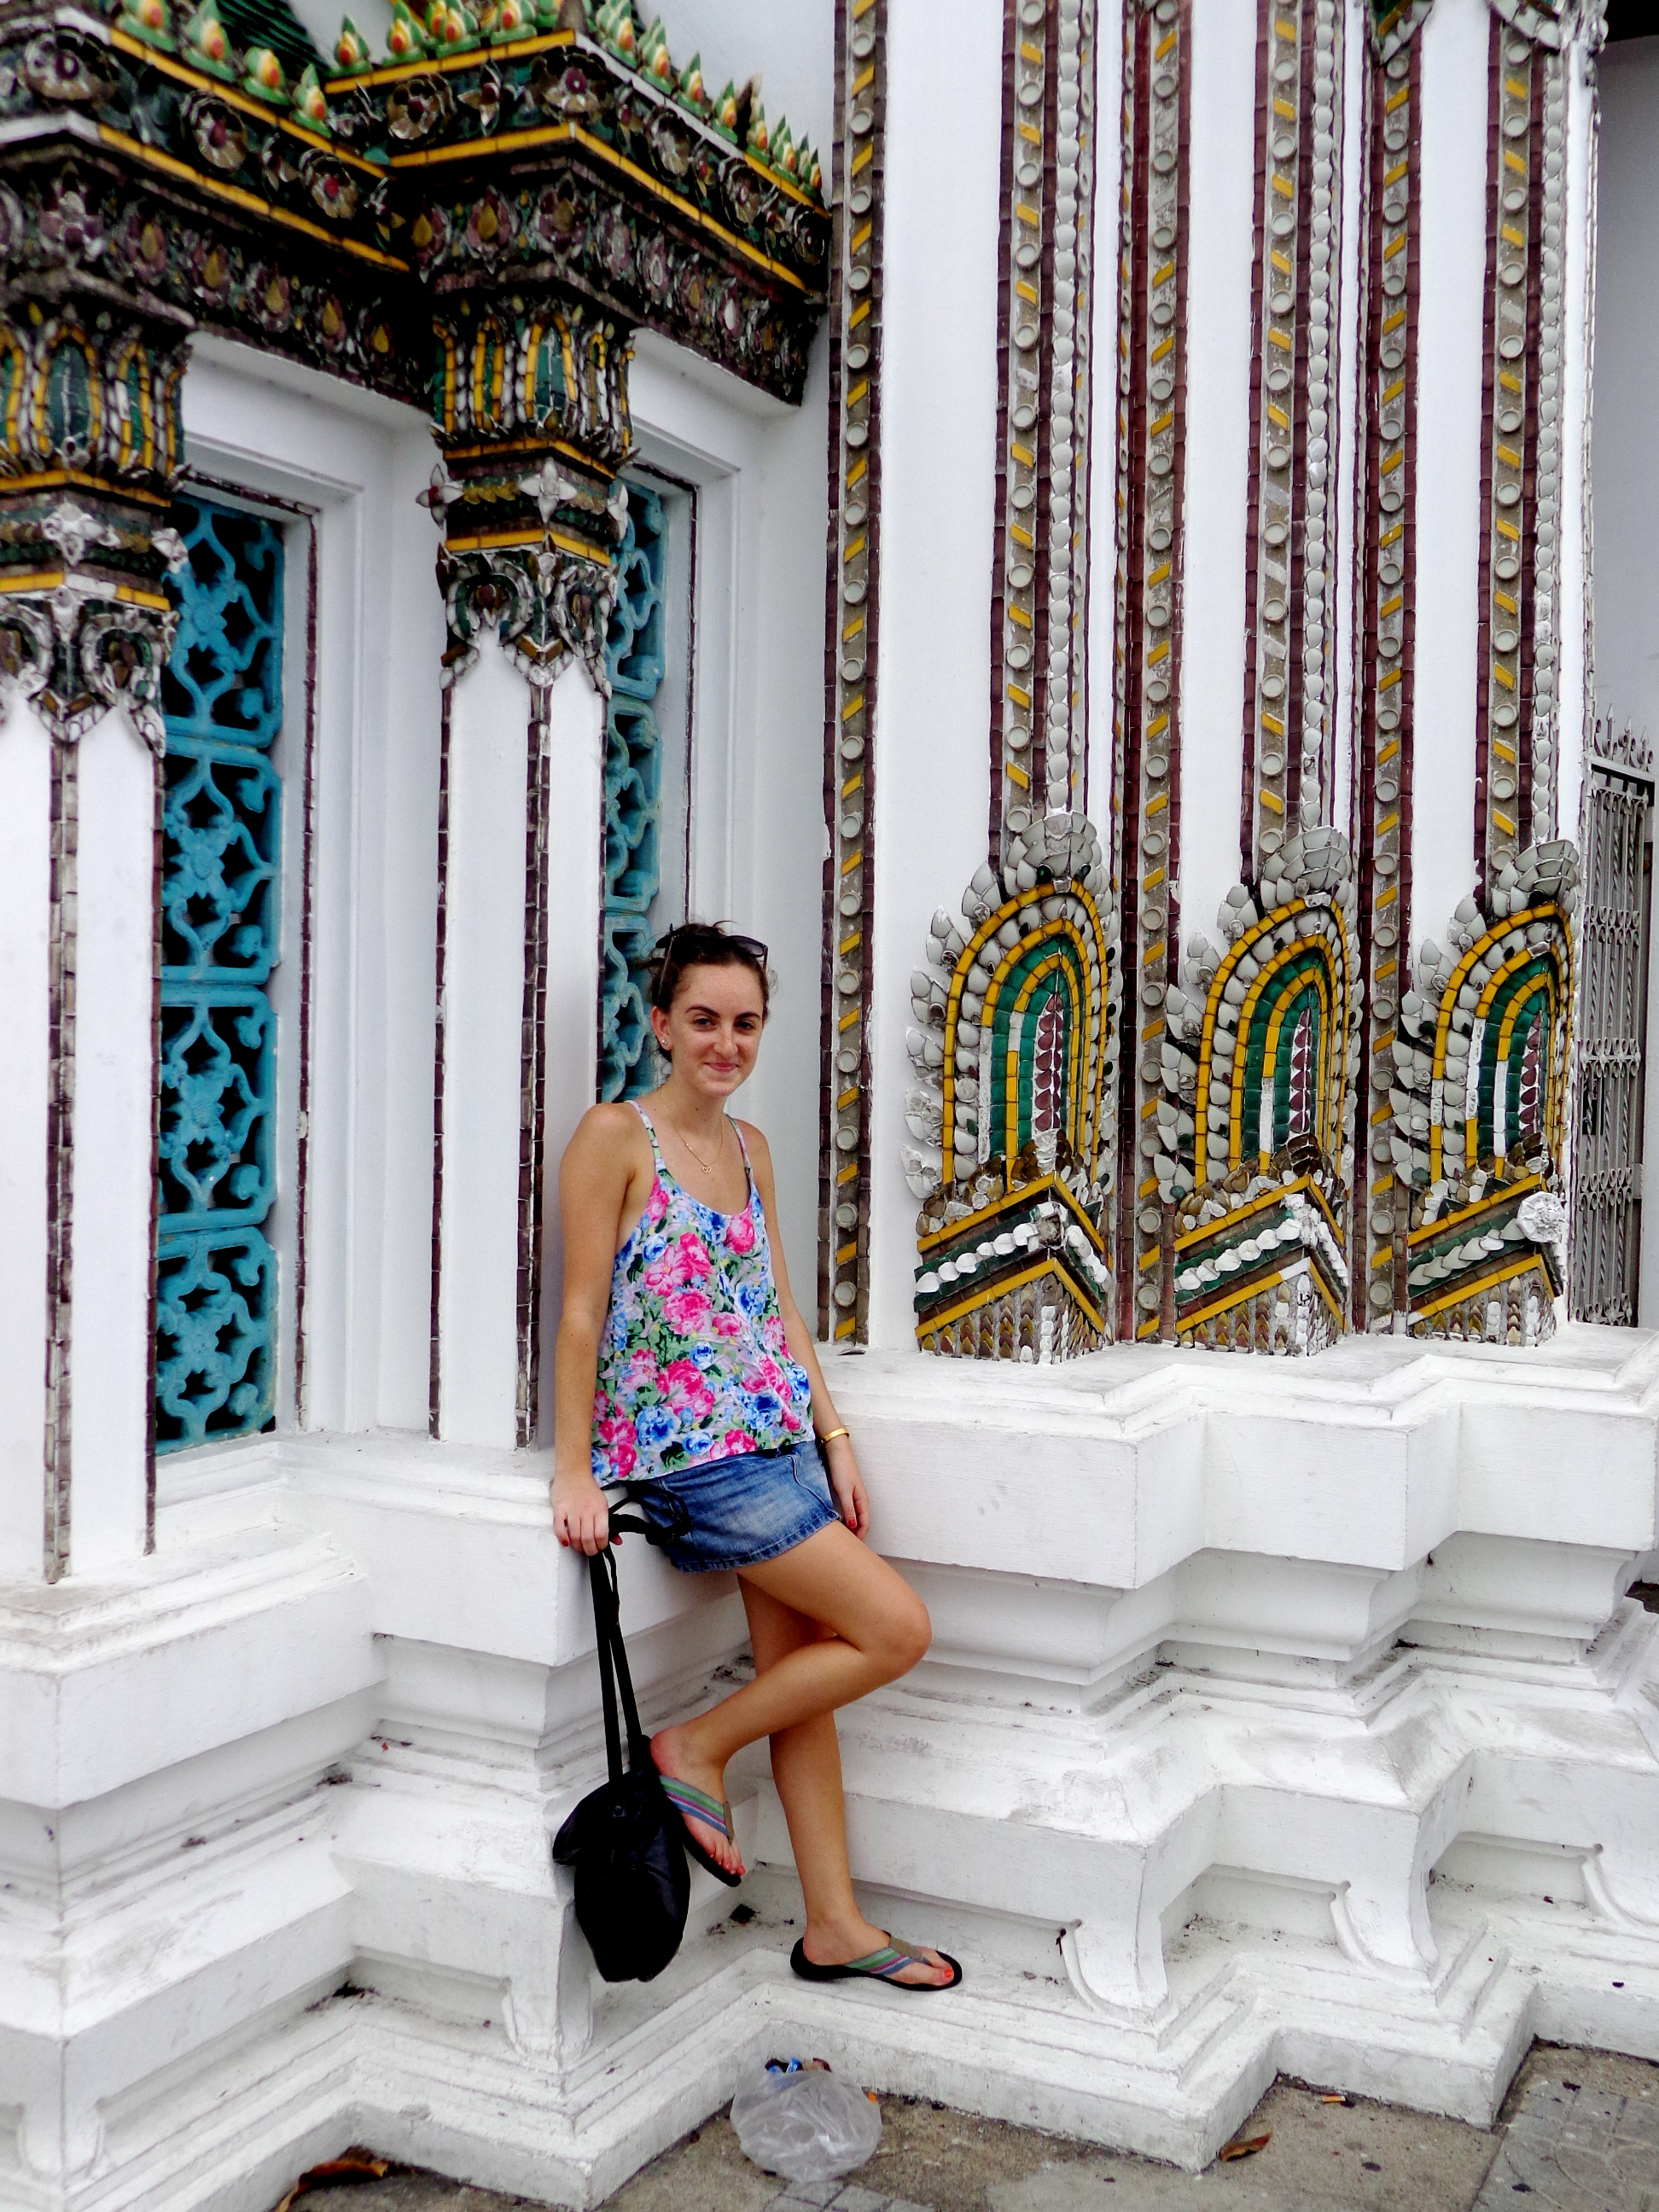 Remembering living in Bangkok